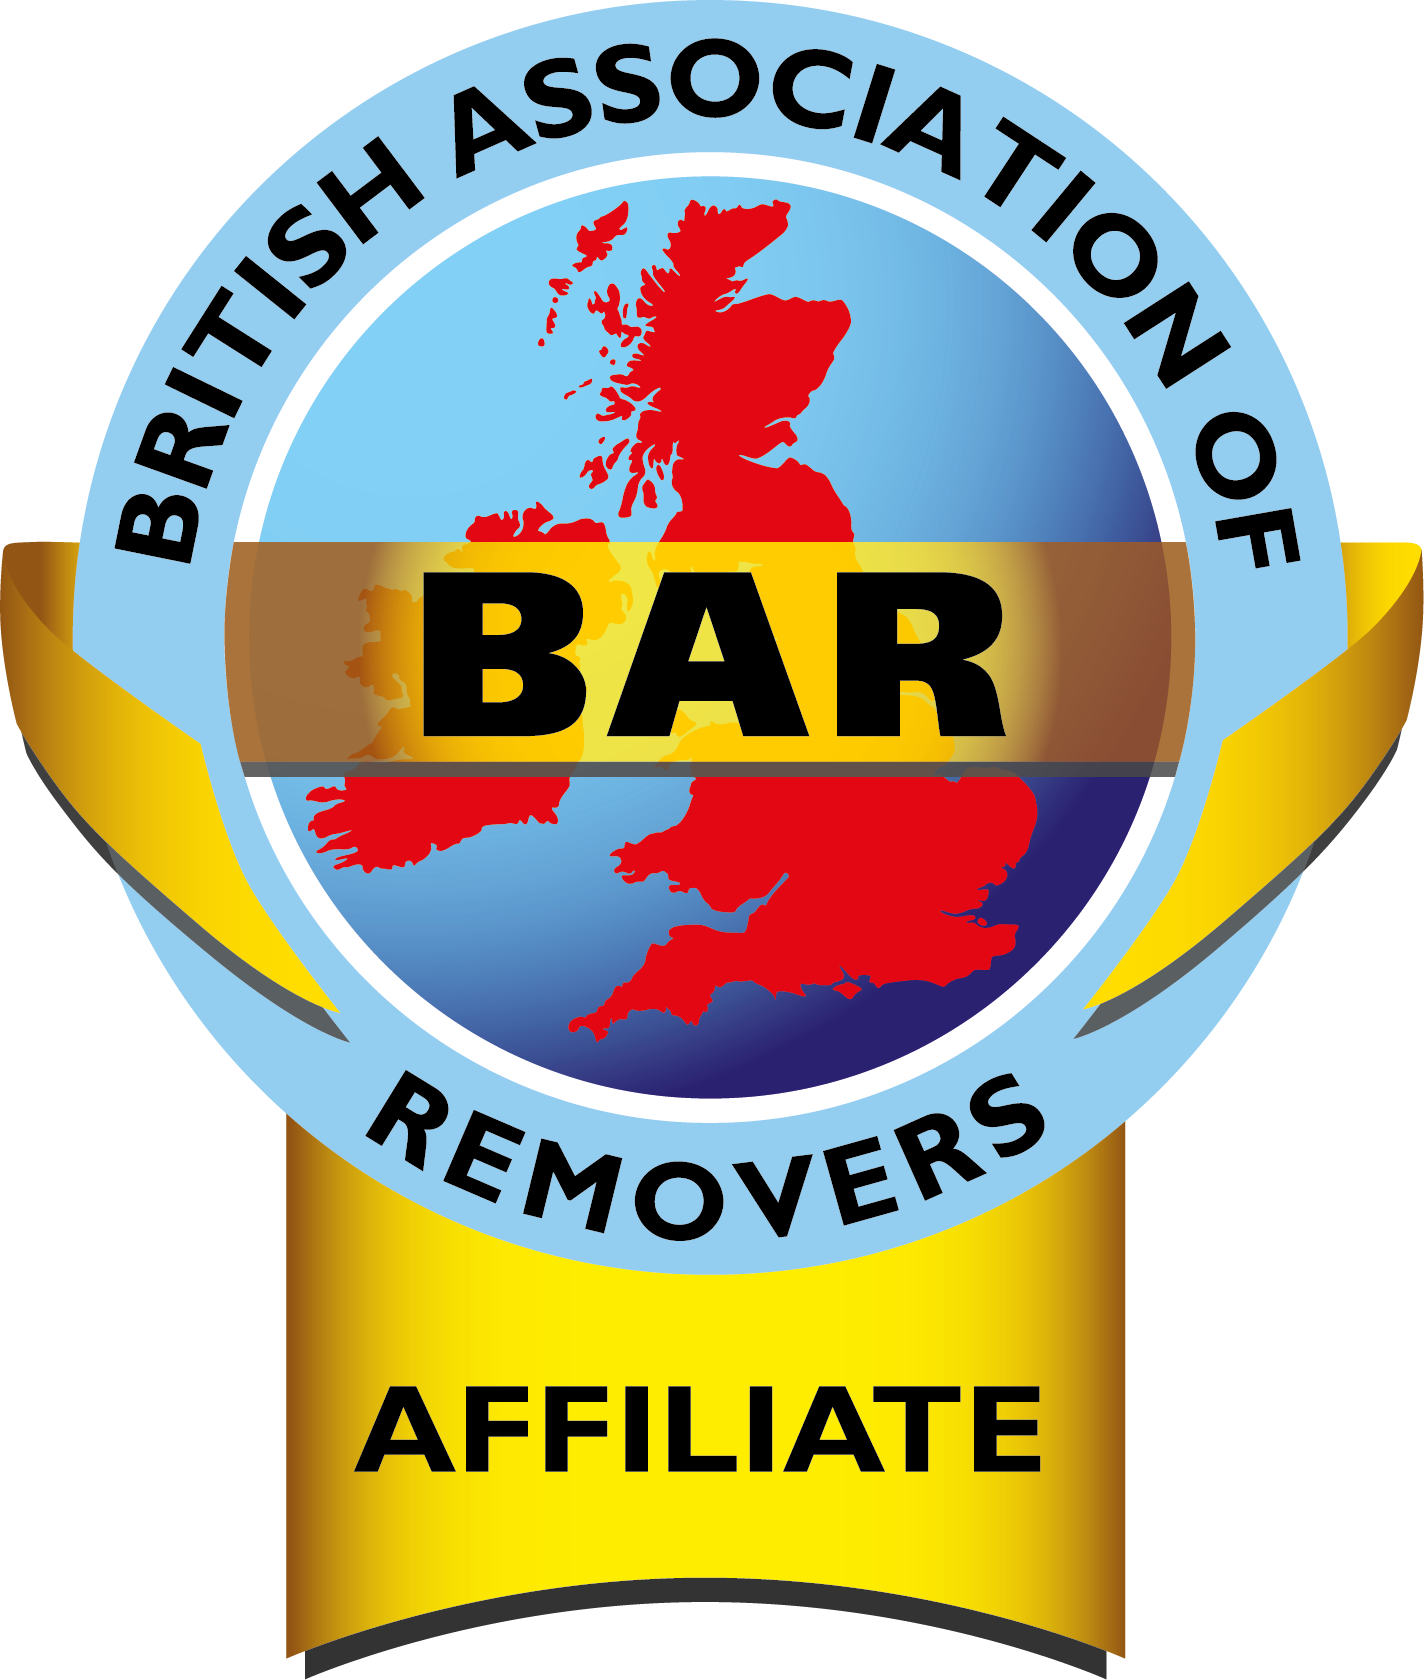 BAR British Association of Removers